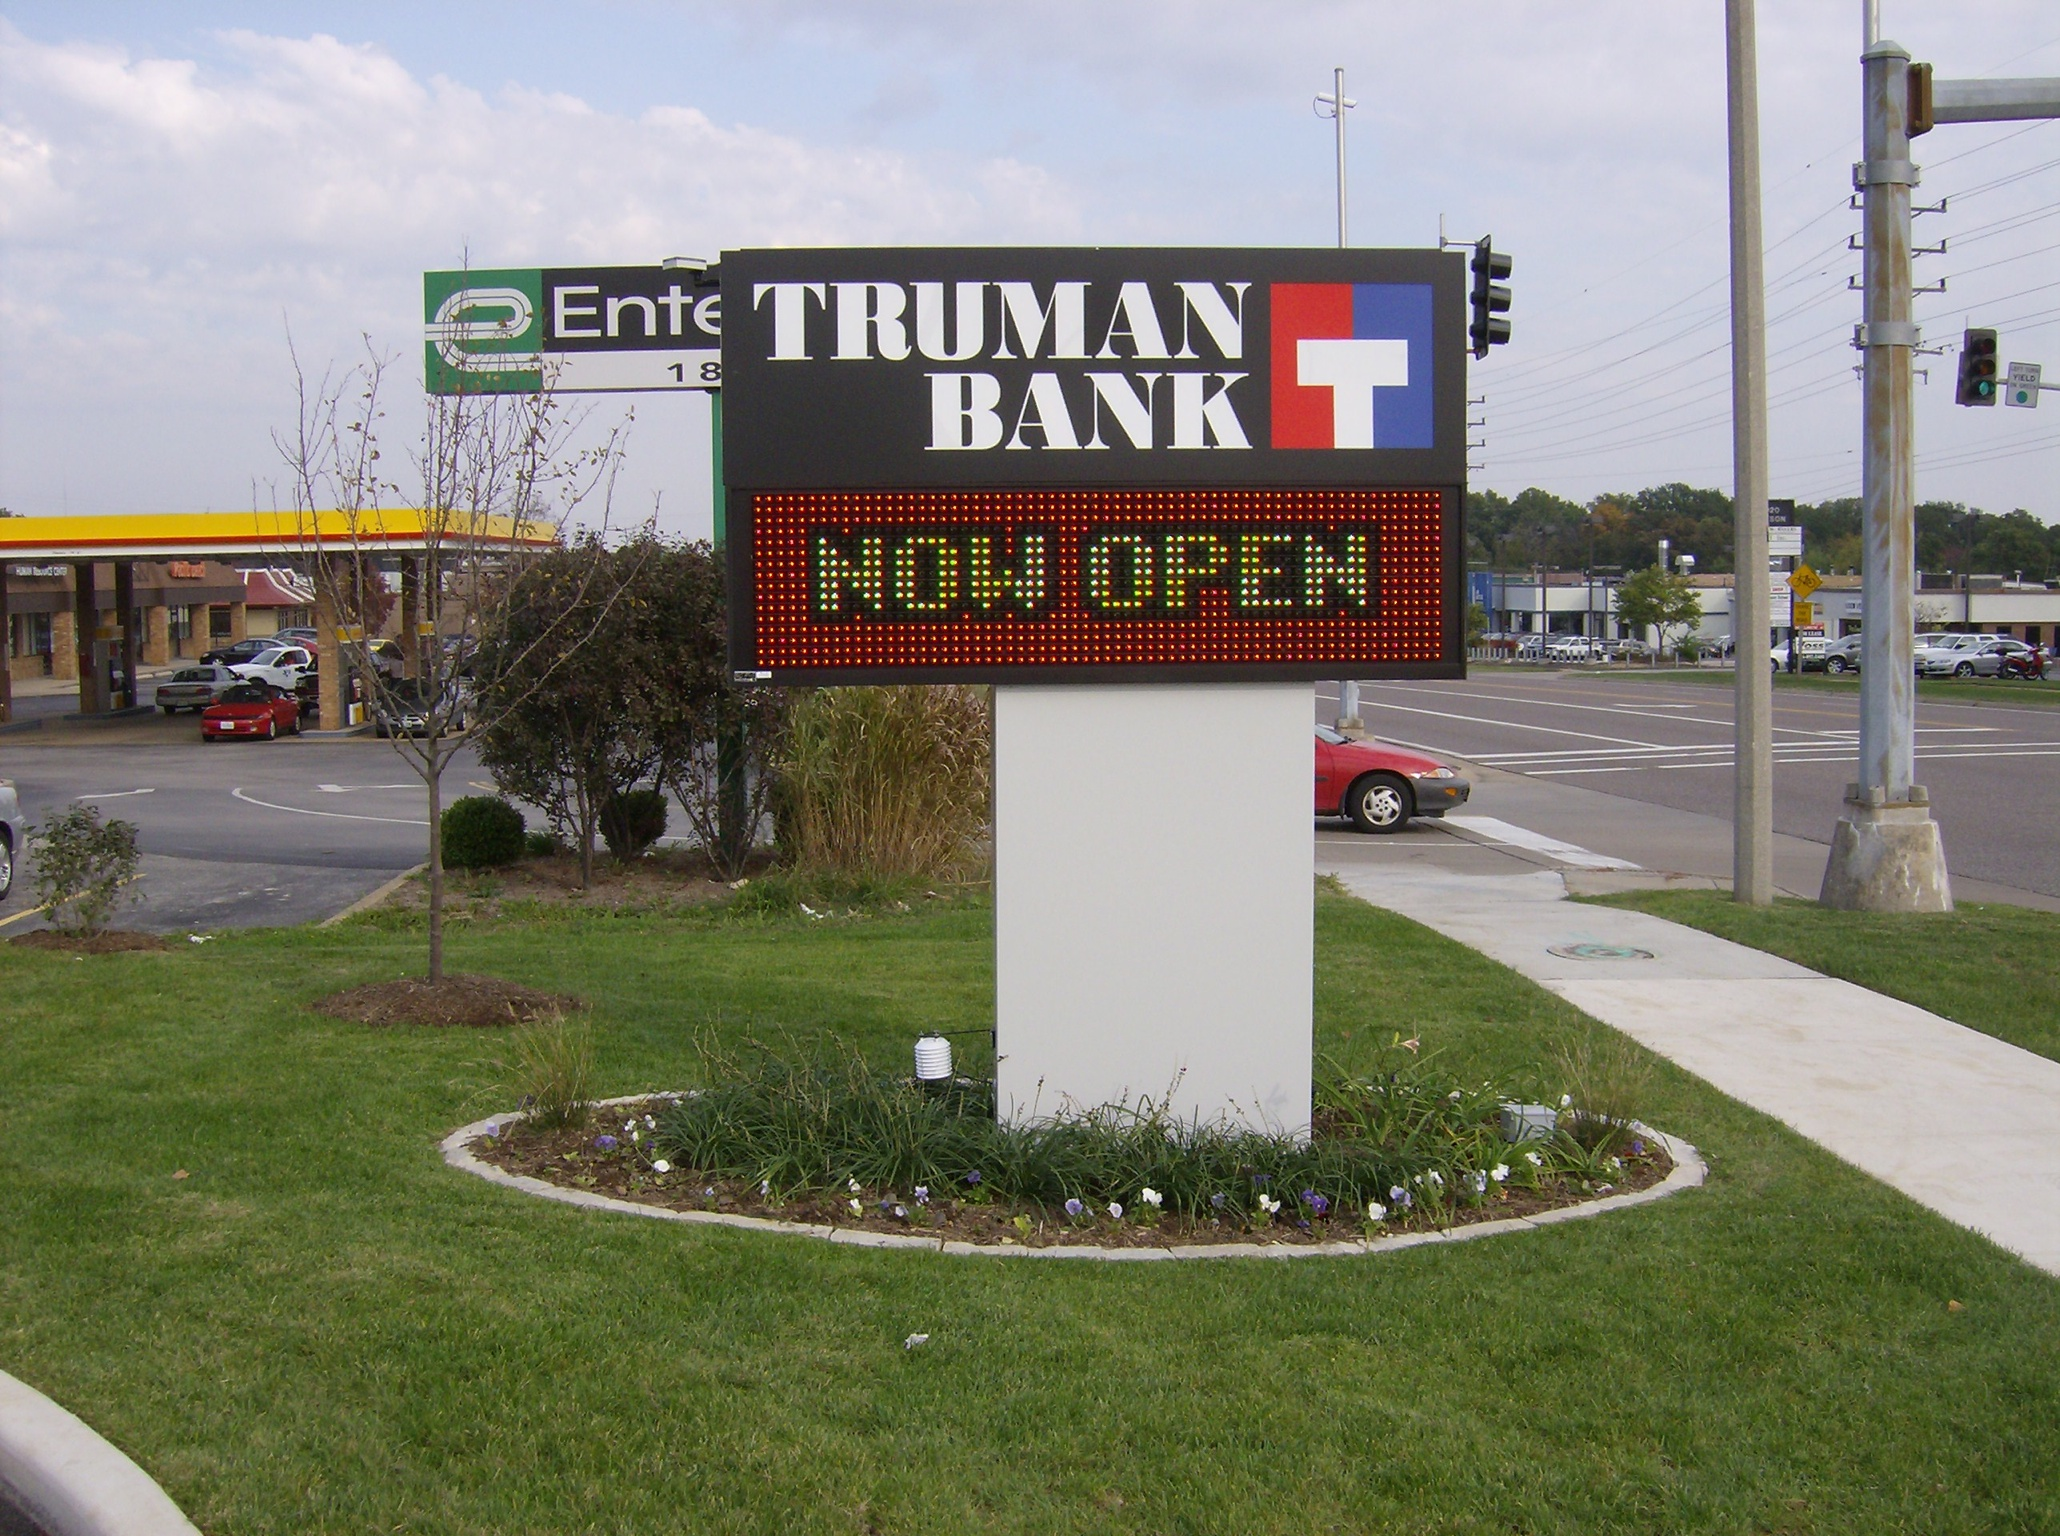 Collection-of-LED-Signs-James-Mohrmann-2008-07-20